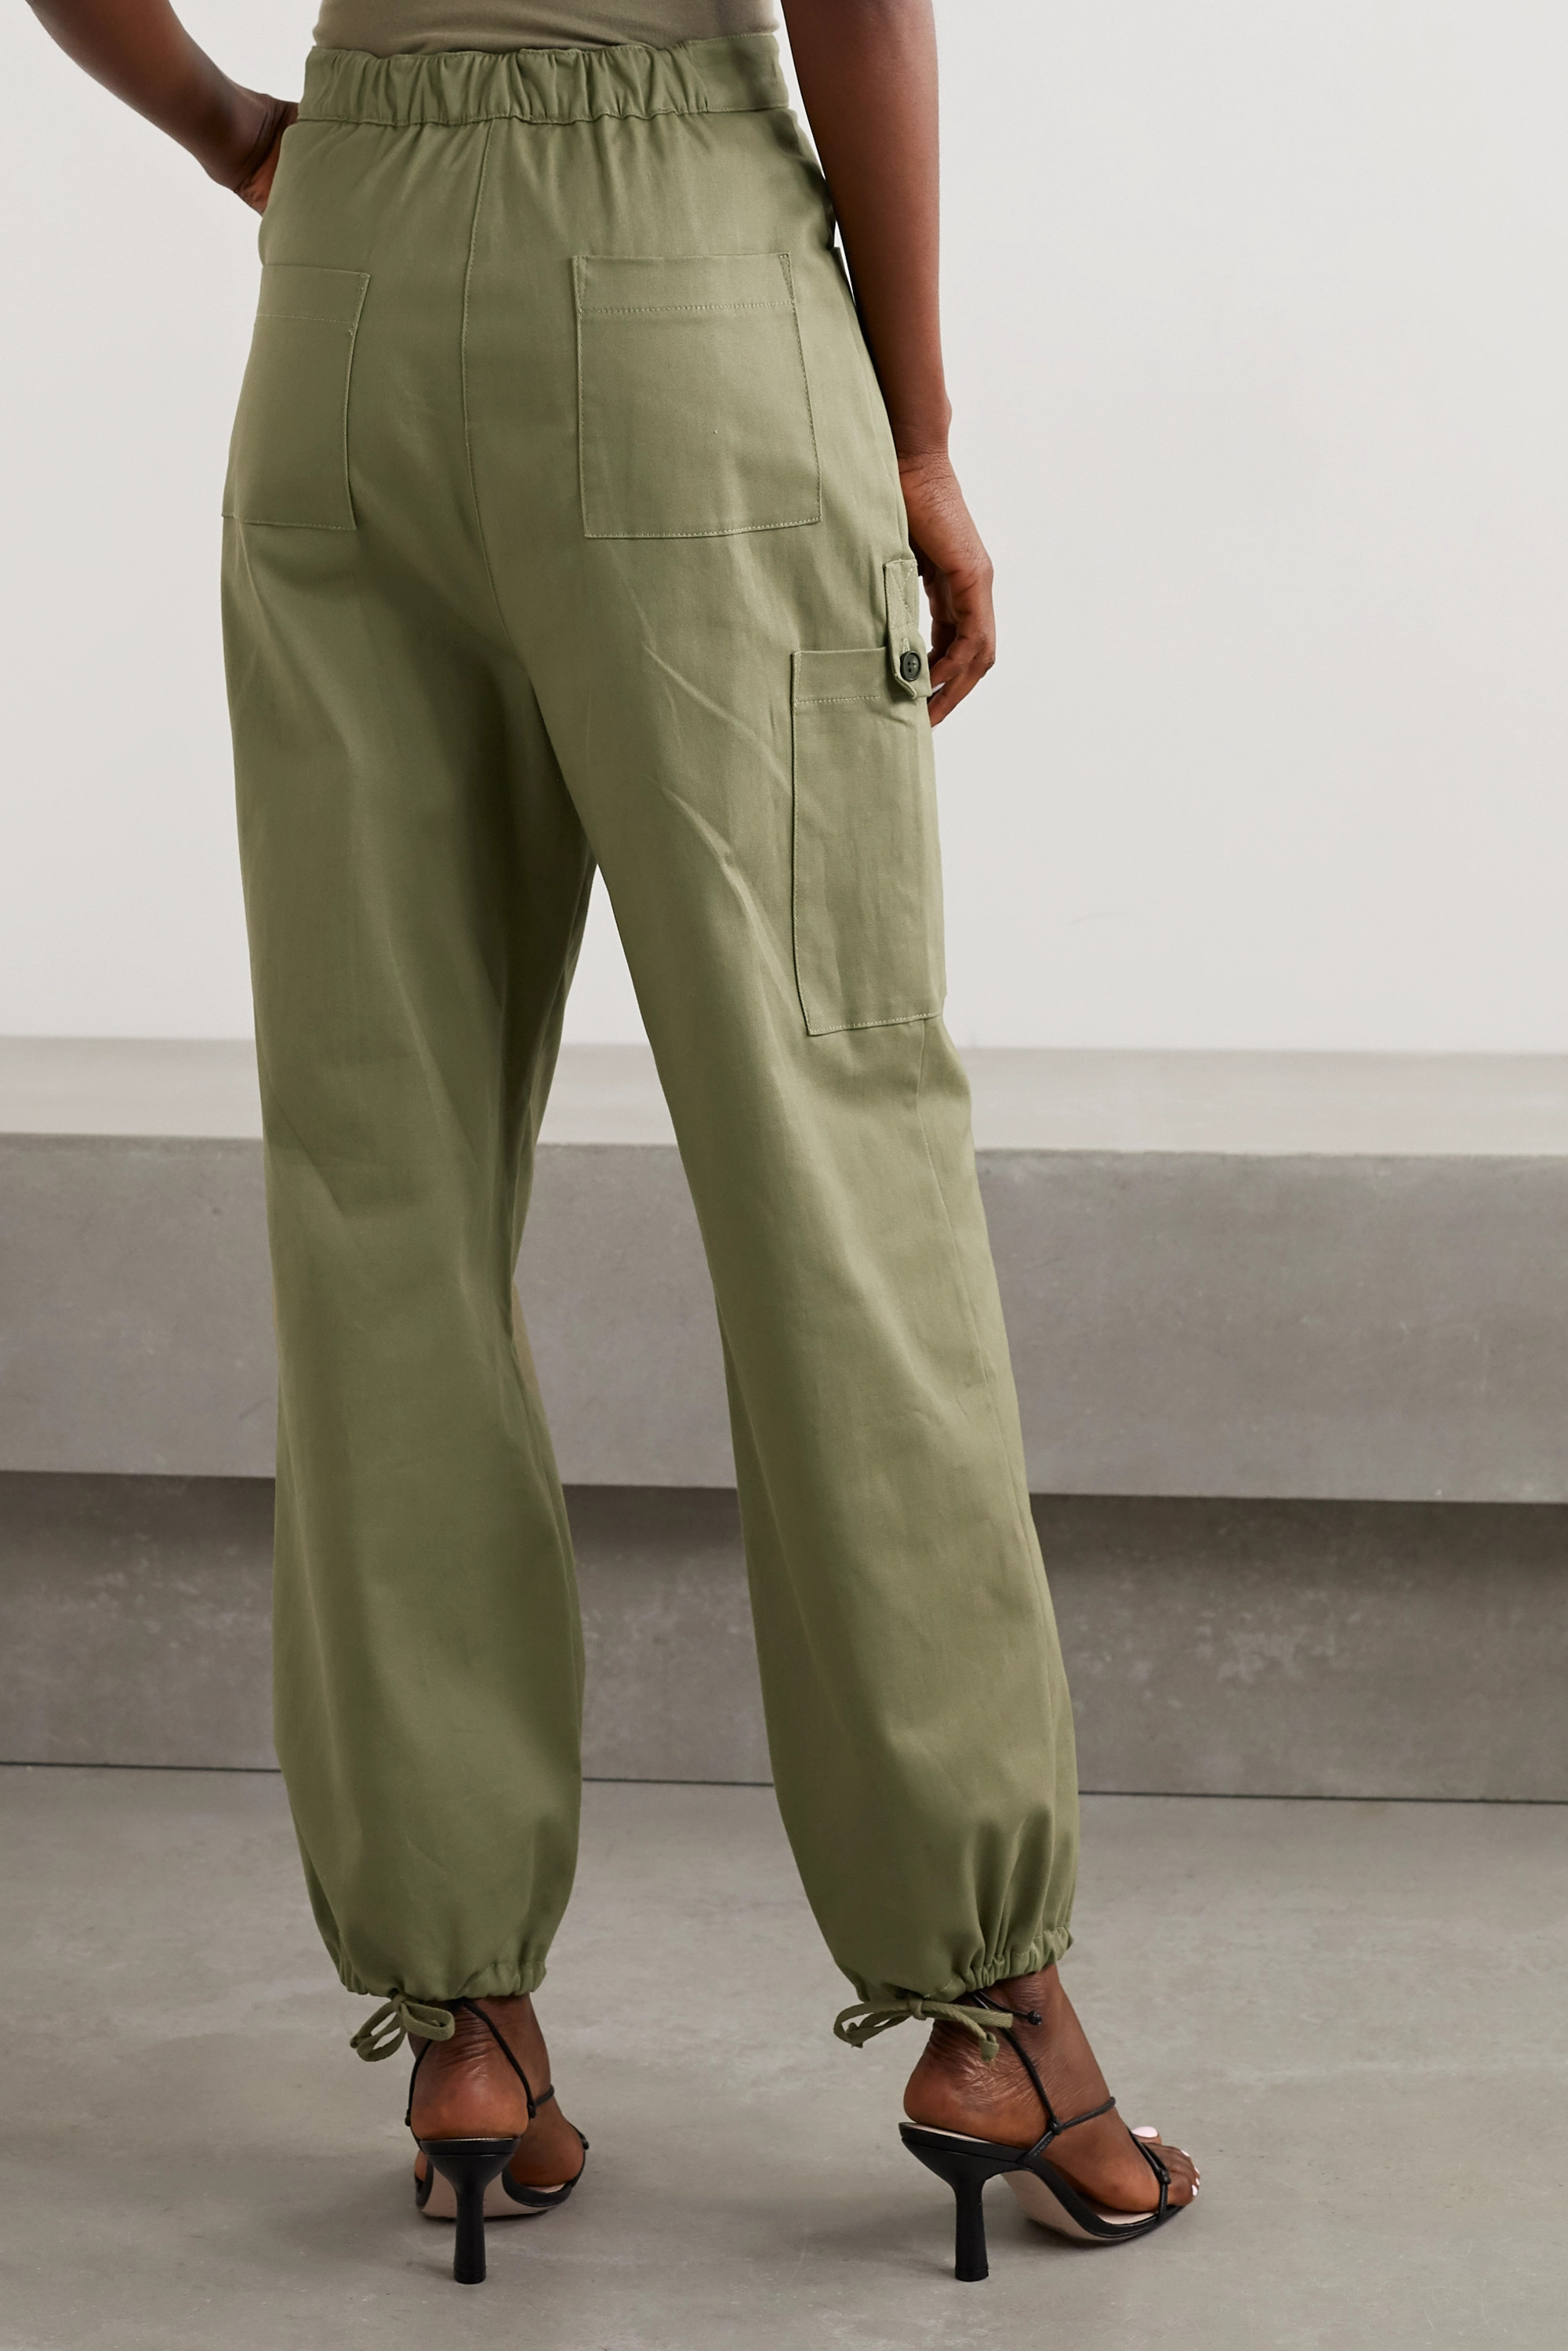 The Range Cotton-blend twill cargo pants